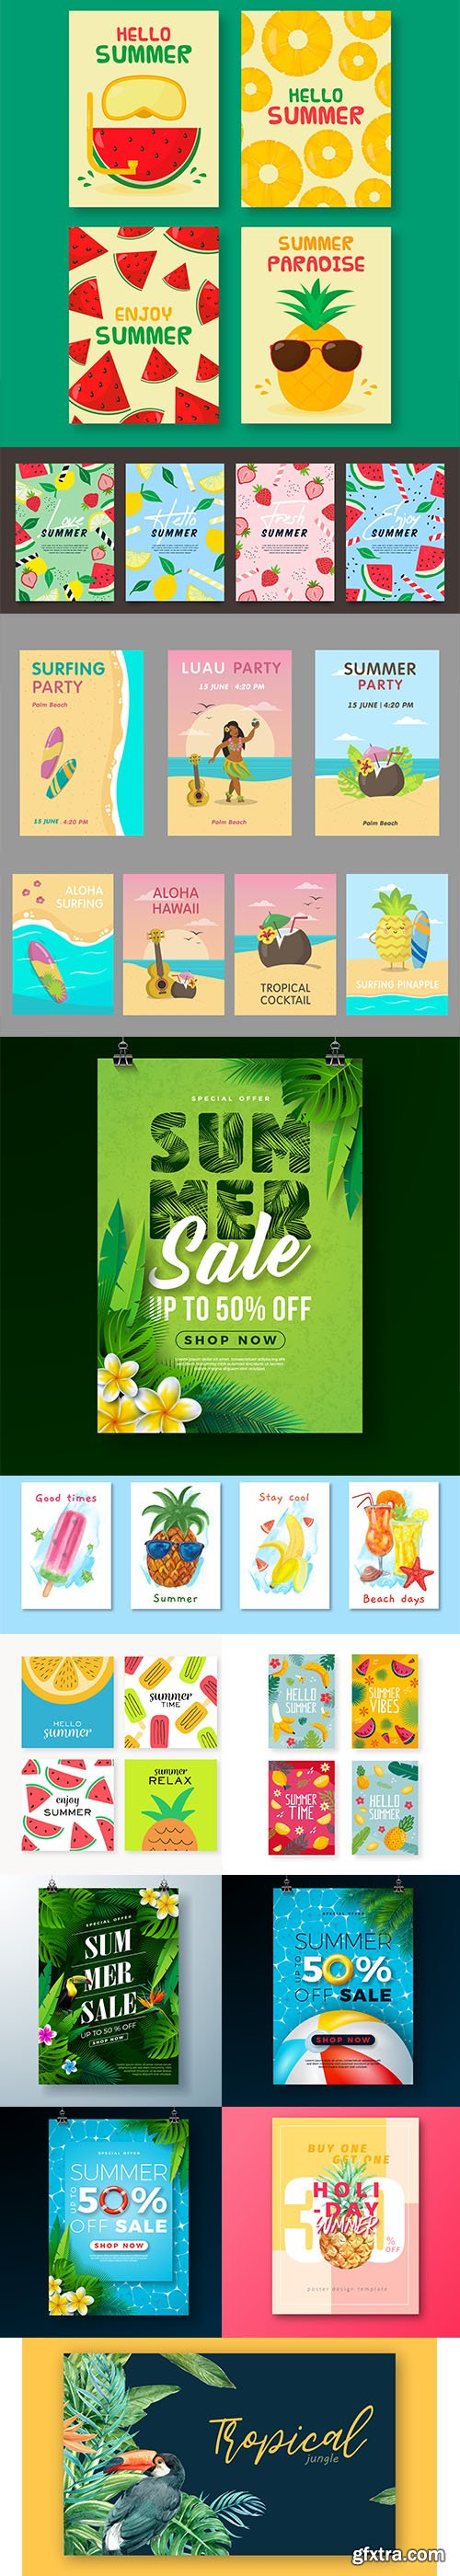 Collection of summer, travel and holidays poster and card